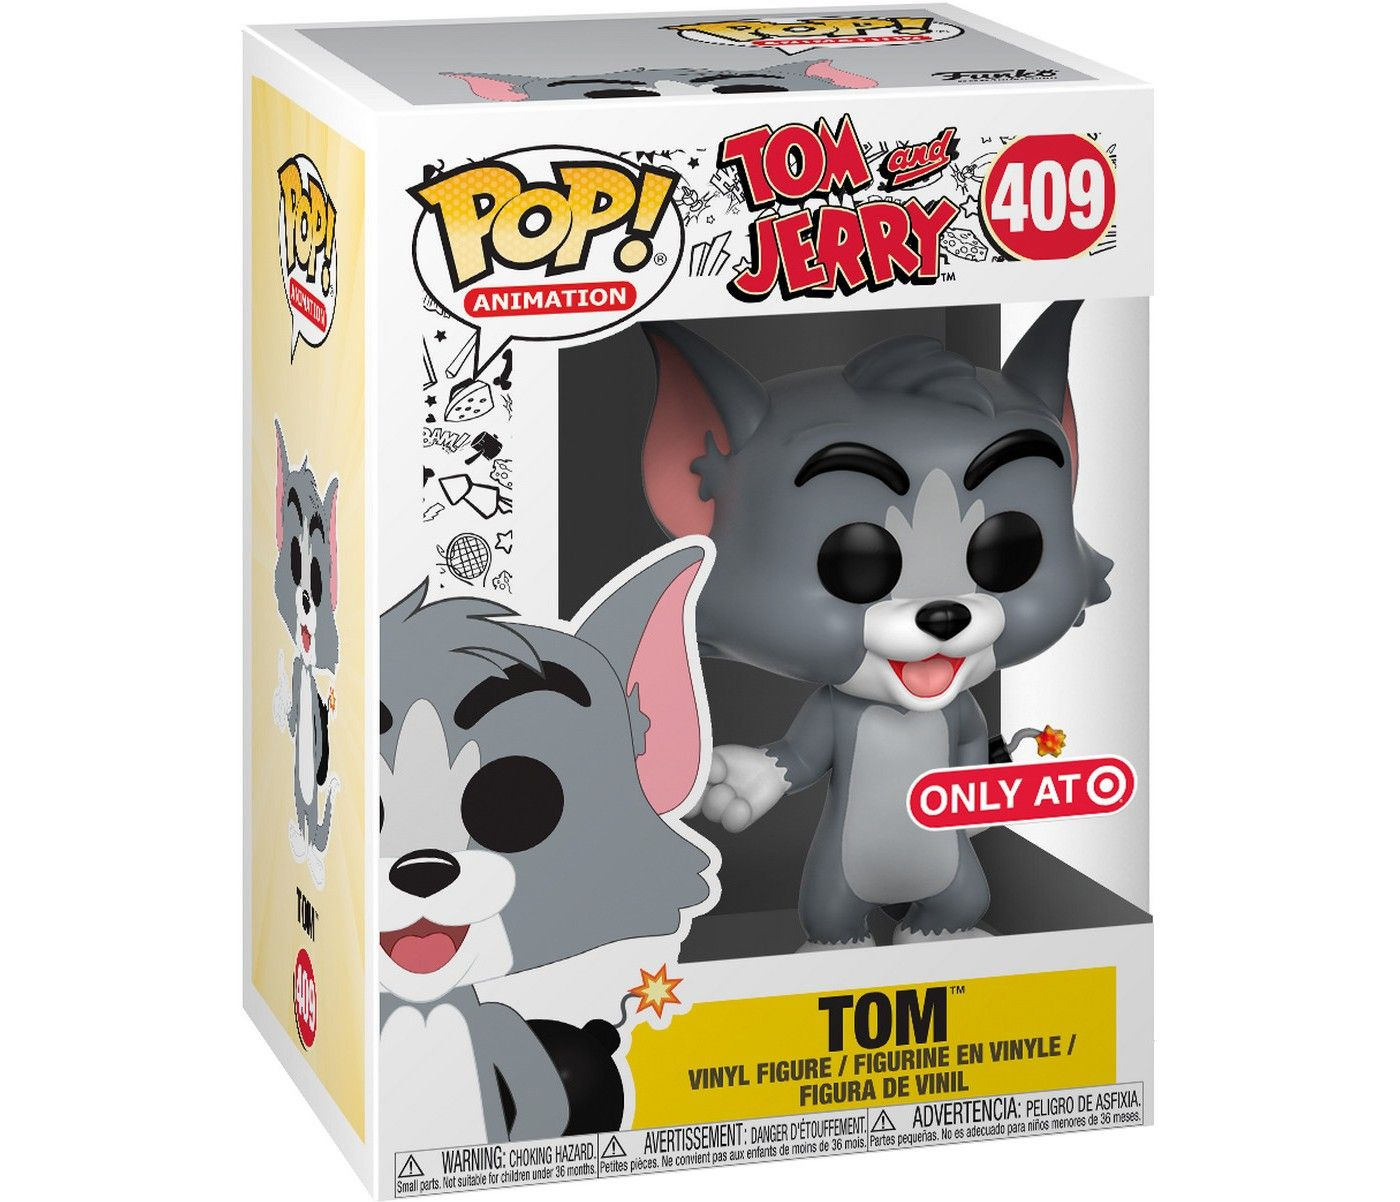 Jerry Tom and Jerry S1 Funko POP Animation